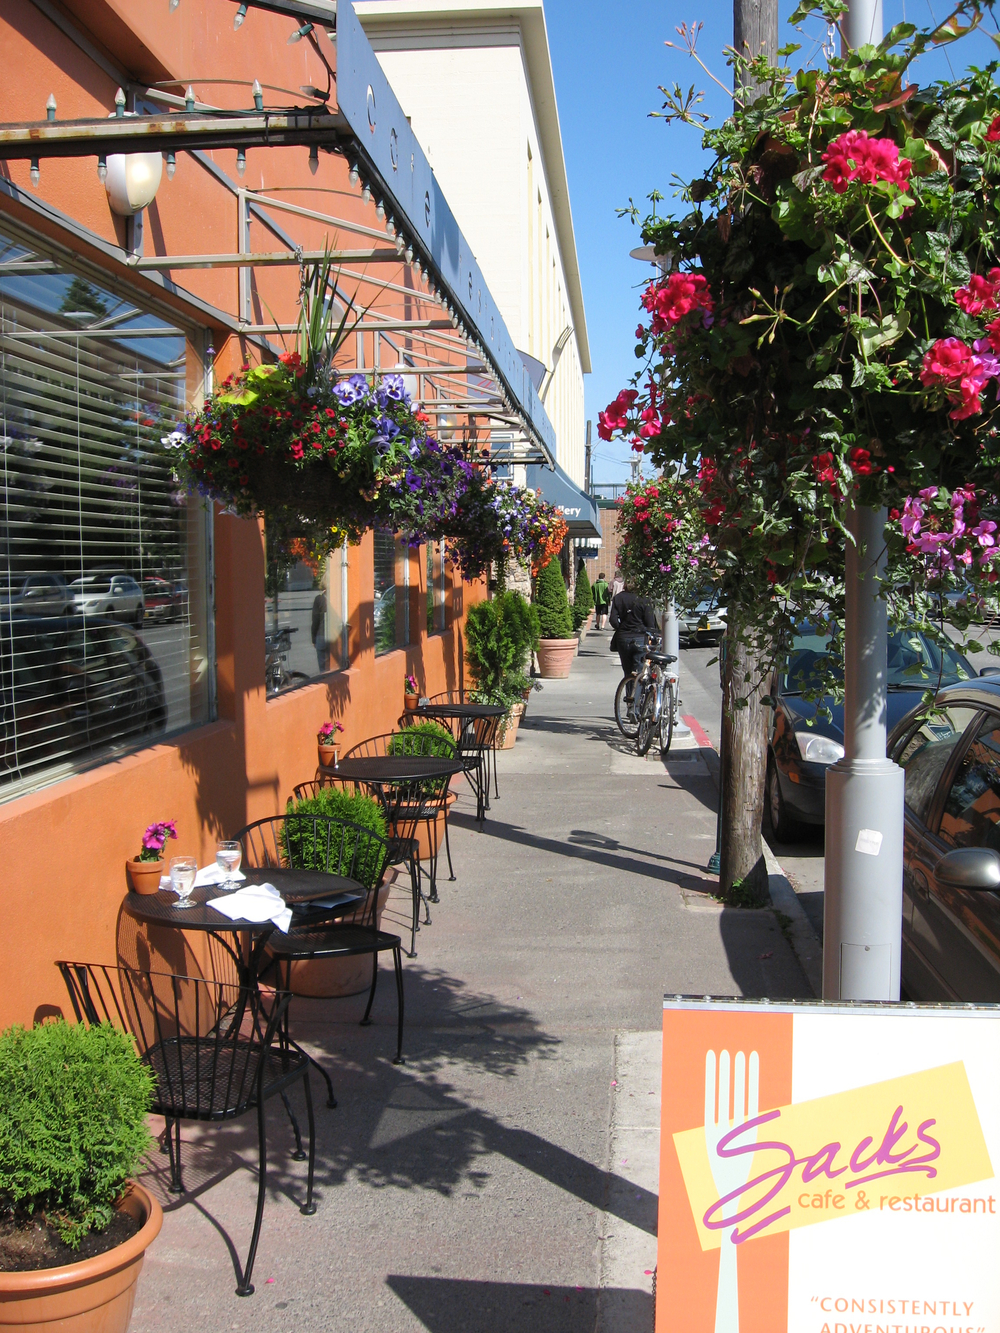 Downtown Anchorage has many great streetscapes with the best hanging baskets I have ever scene.